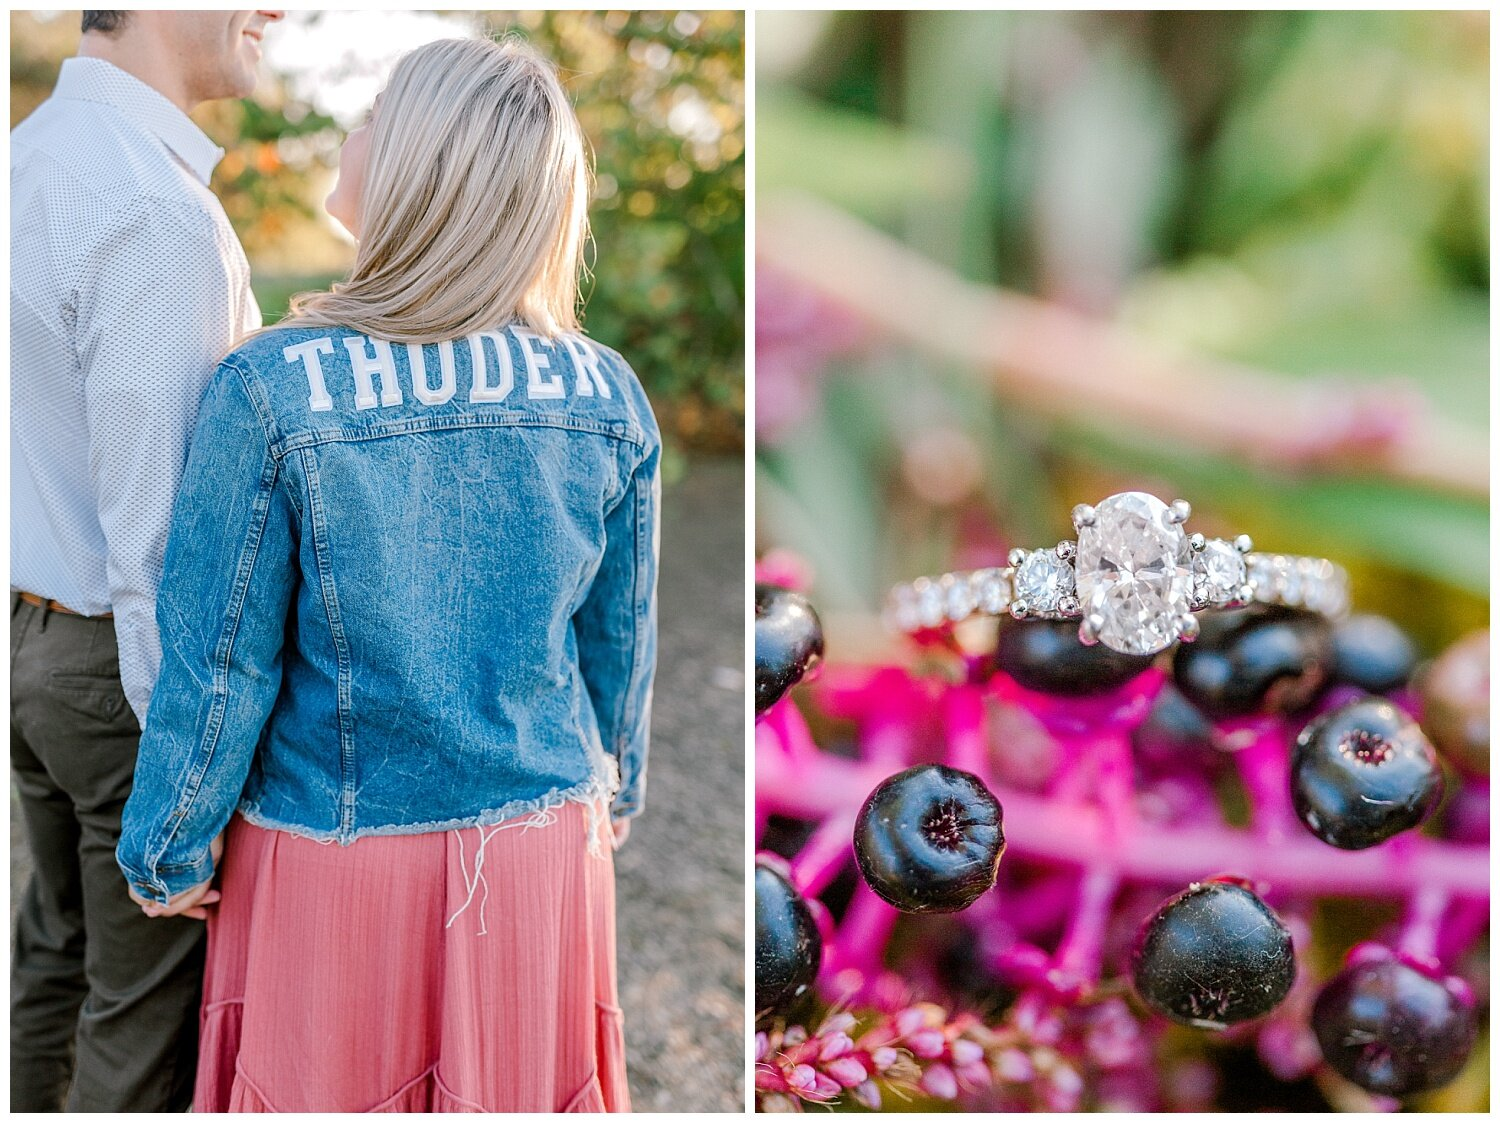 Peace Valley Park Doylestown bucks county PA fall sunrise engagement session  lehigh valley pennsylvania based wedding and lifestyle photographer Jeannie Lytle of Lytle Photography Company_0012.jpg